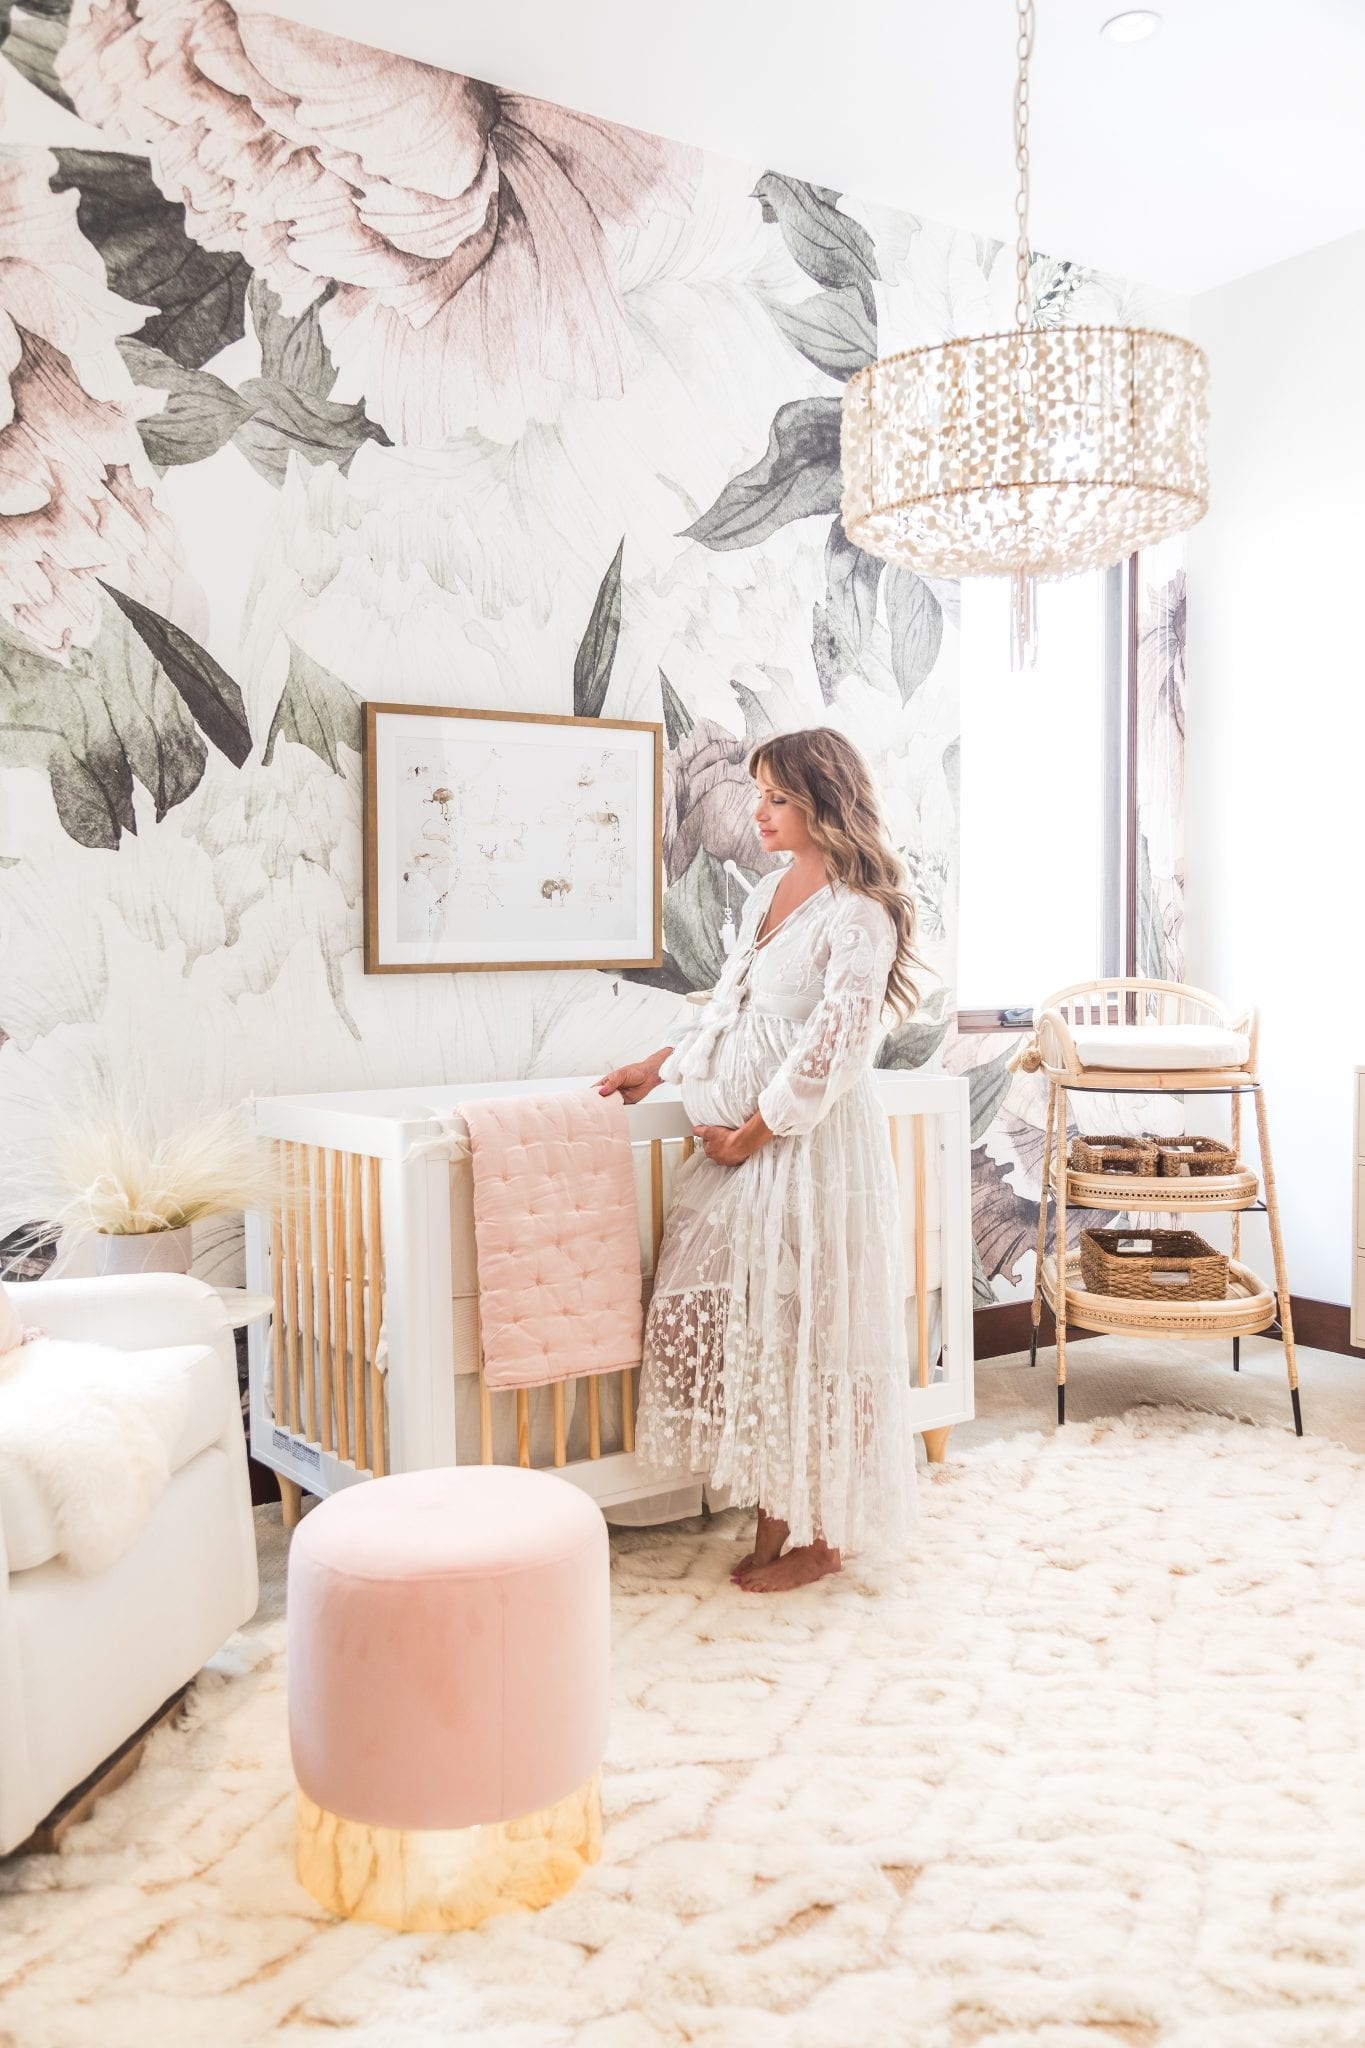 Danielle K White - Nursery Interior